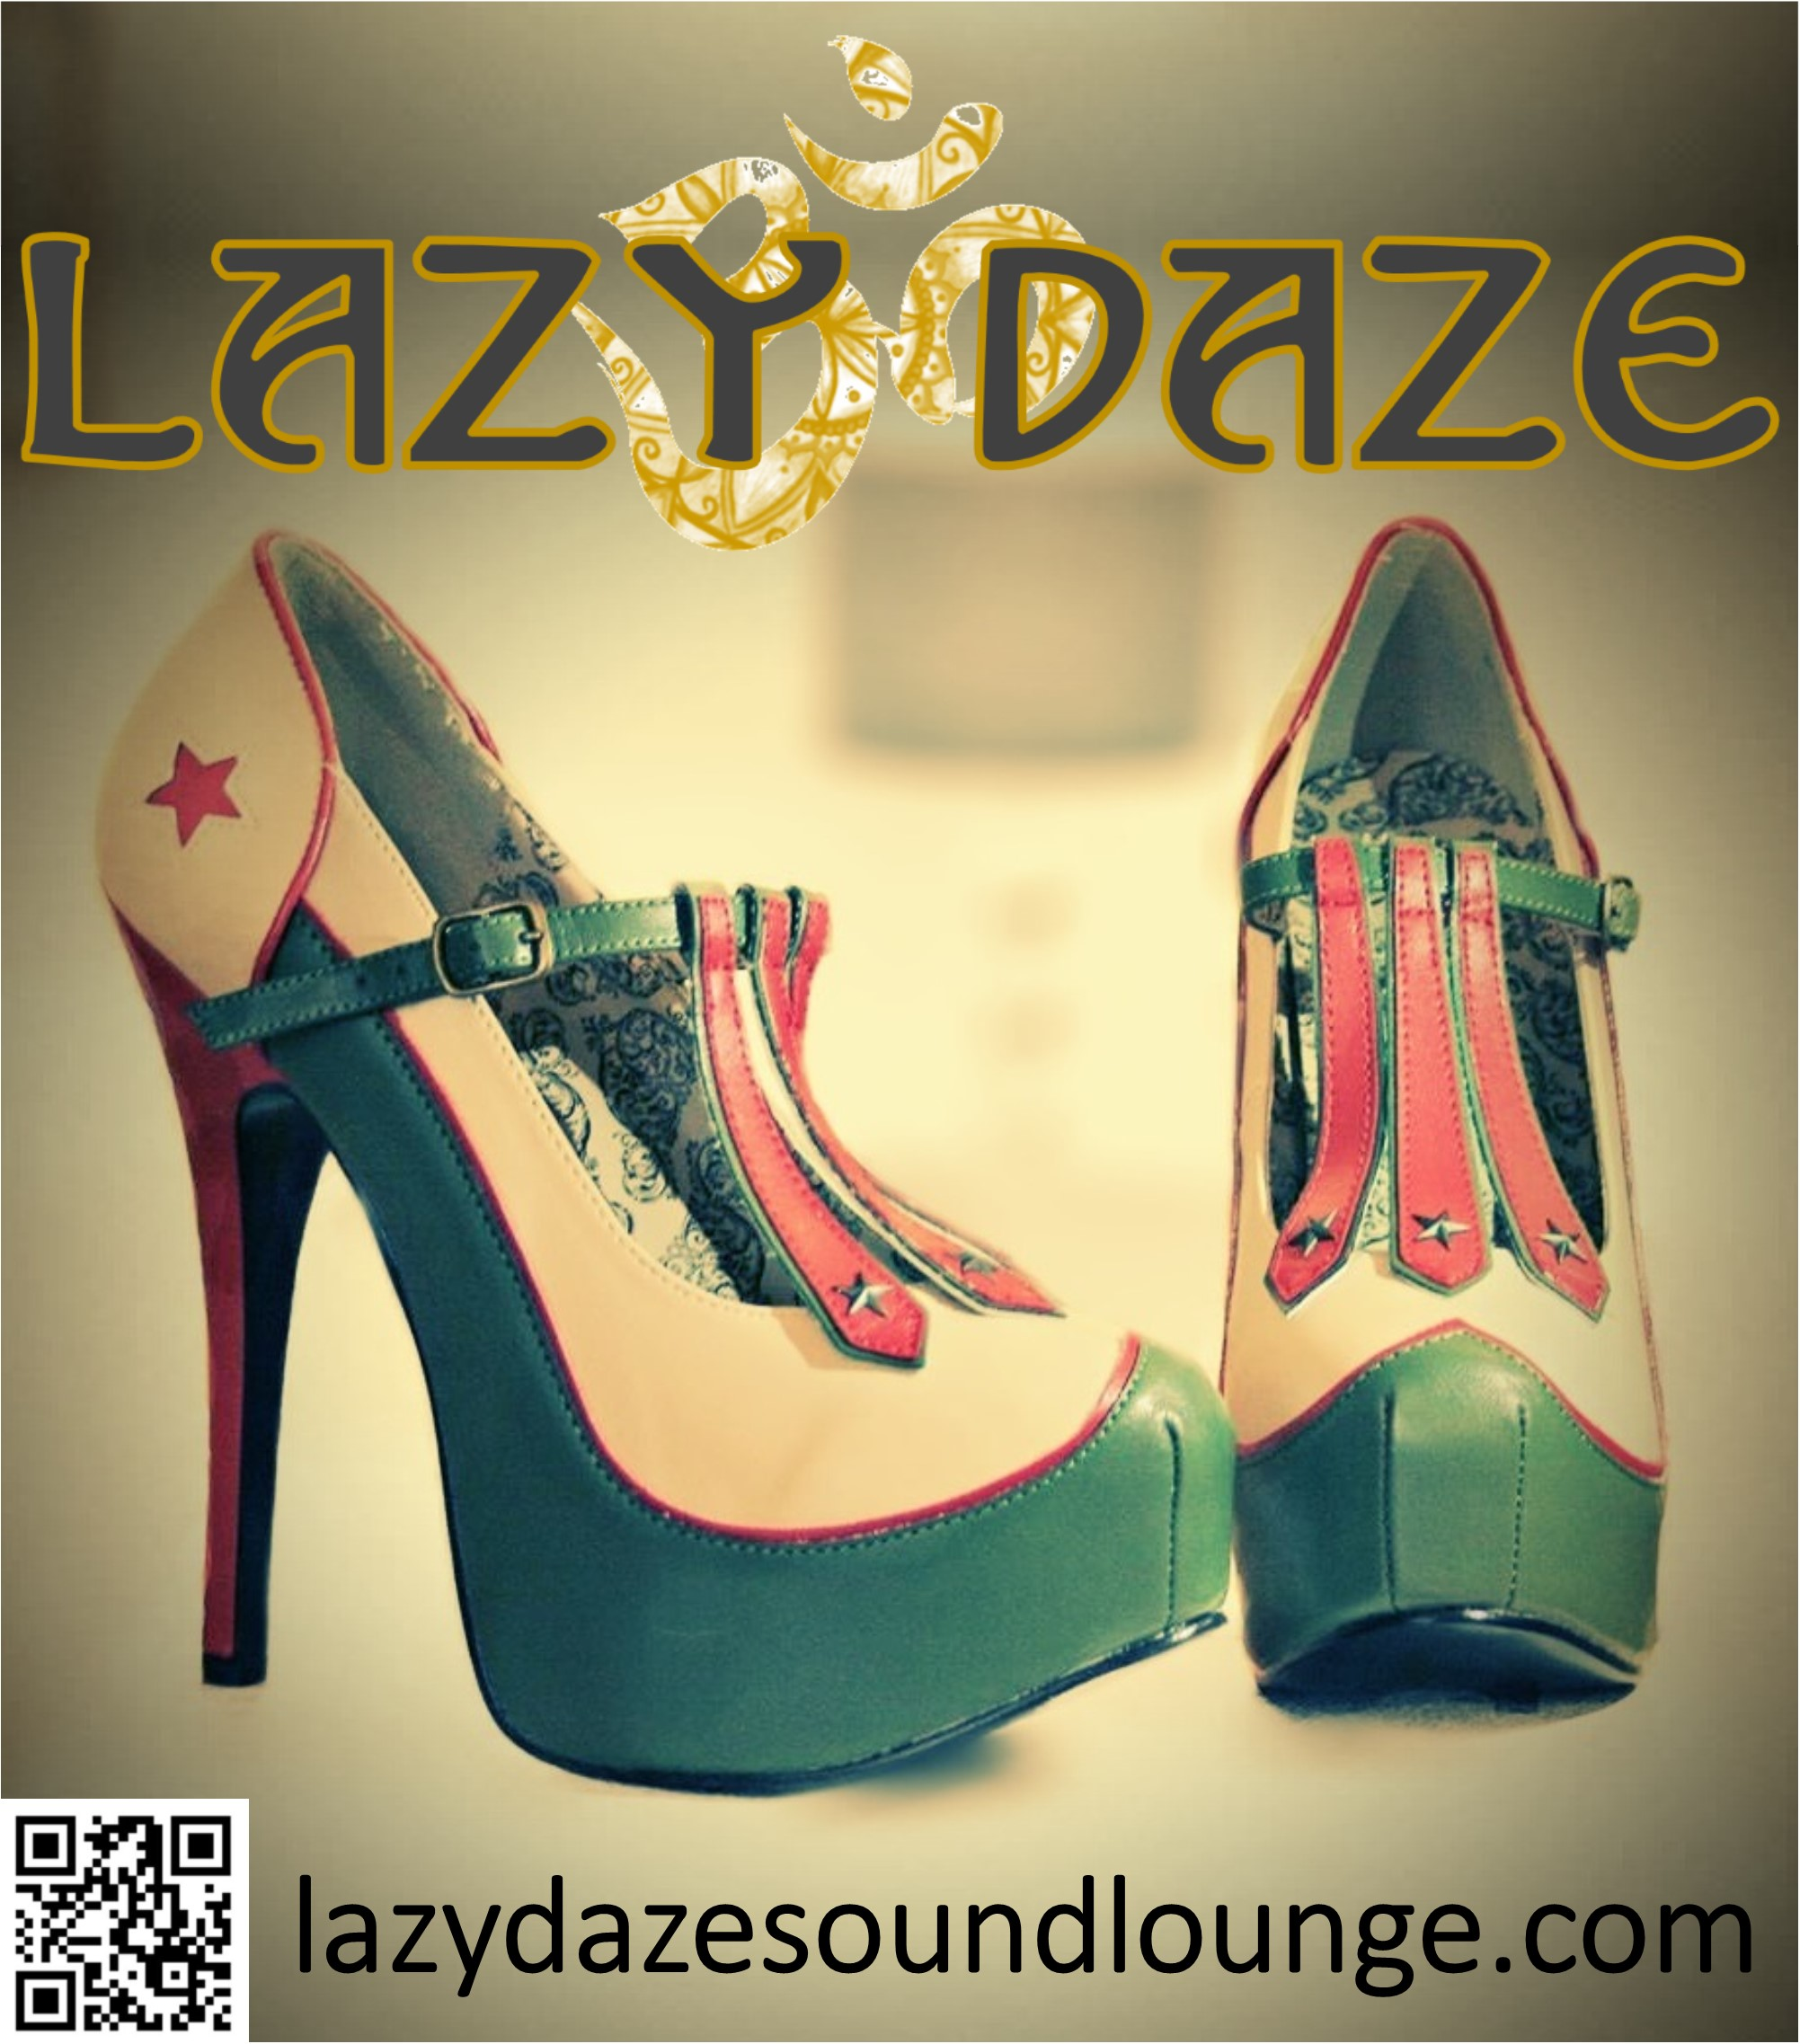 Lazy Daze t-shirts & more